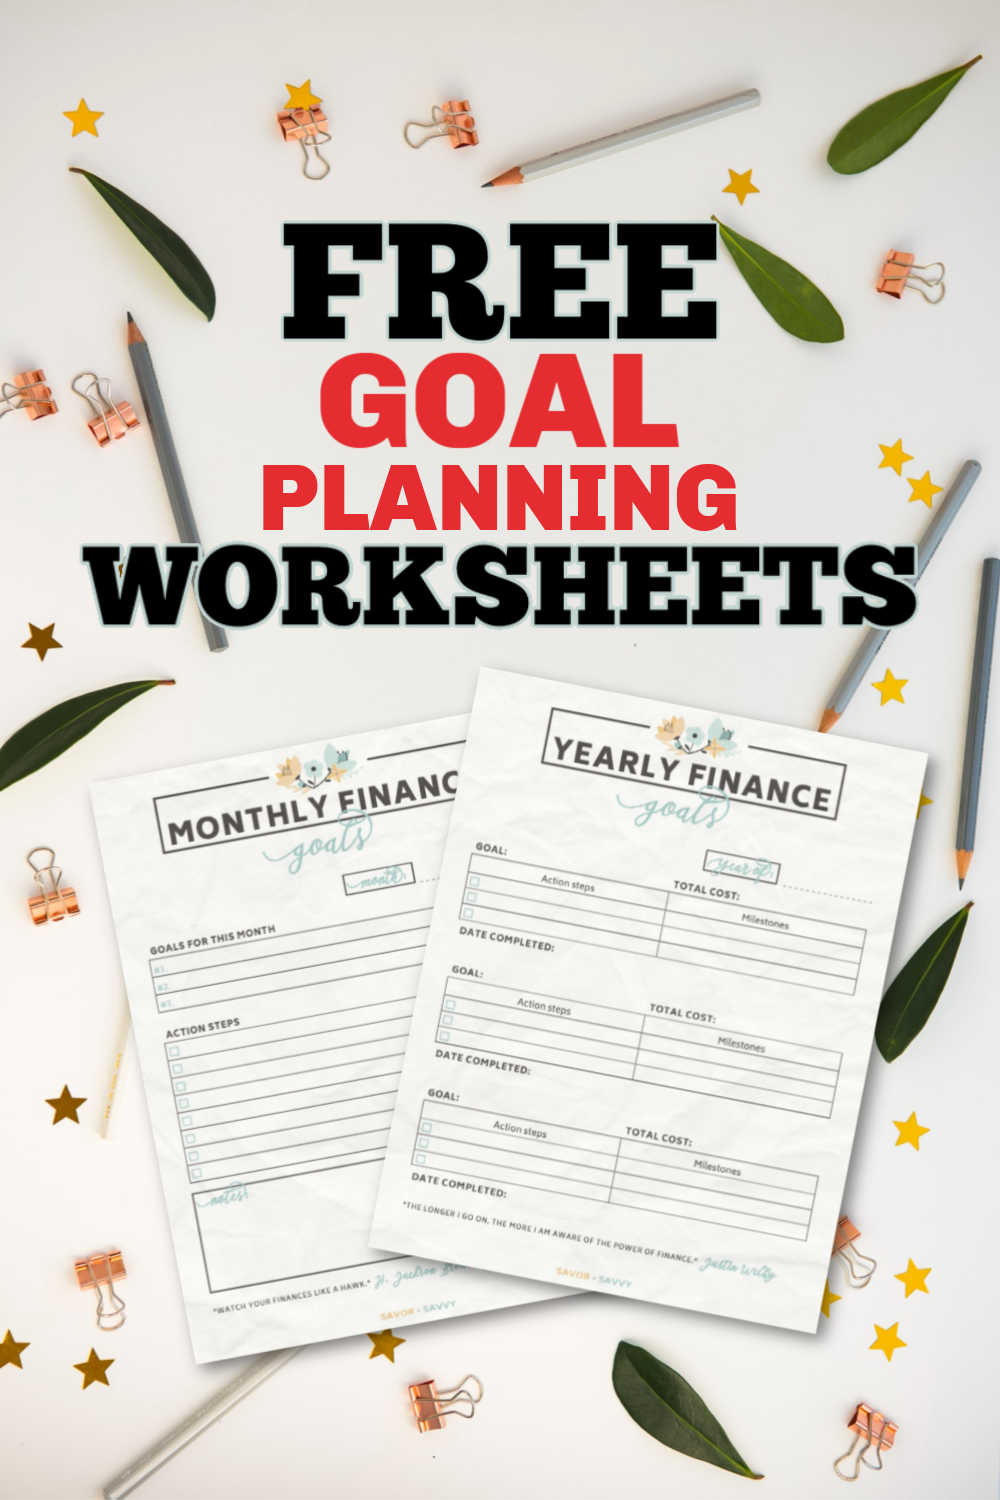 Crush Financial Goals This Year w/ Free Printable Goal Worksheets - Plan Now For Success